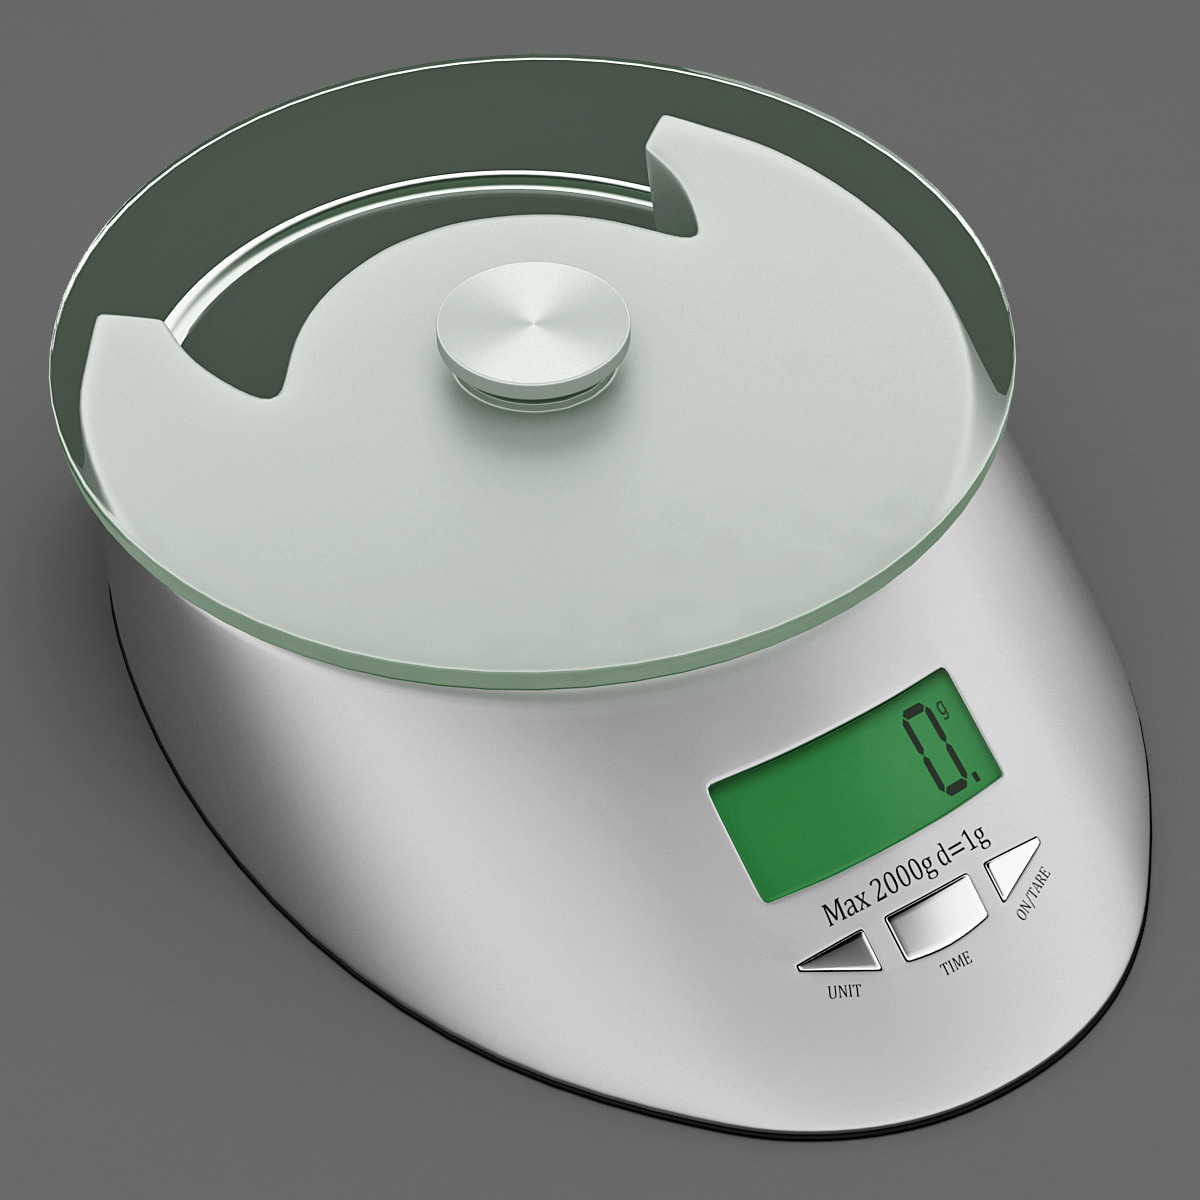 Kitchen_Digital_Scales_V3_0001.jpg